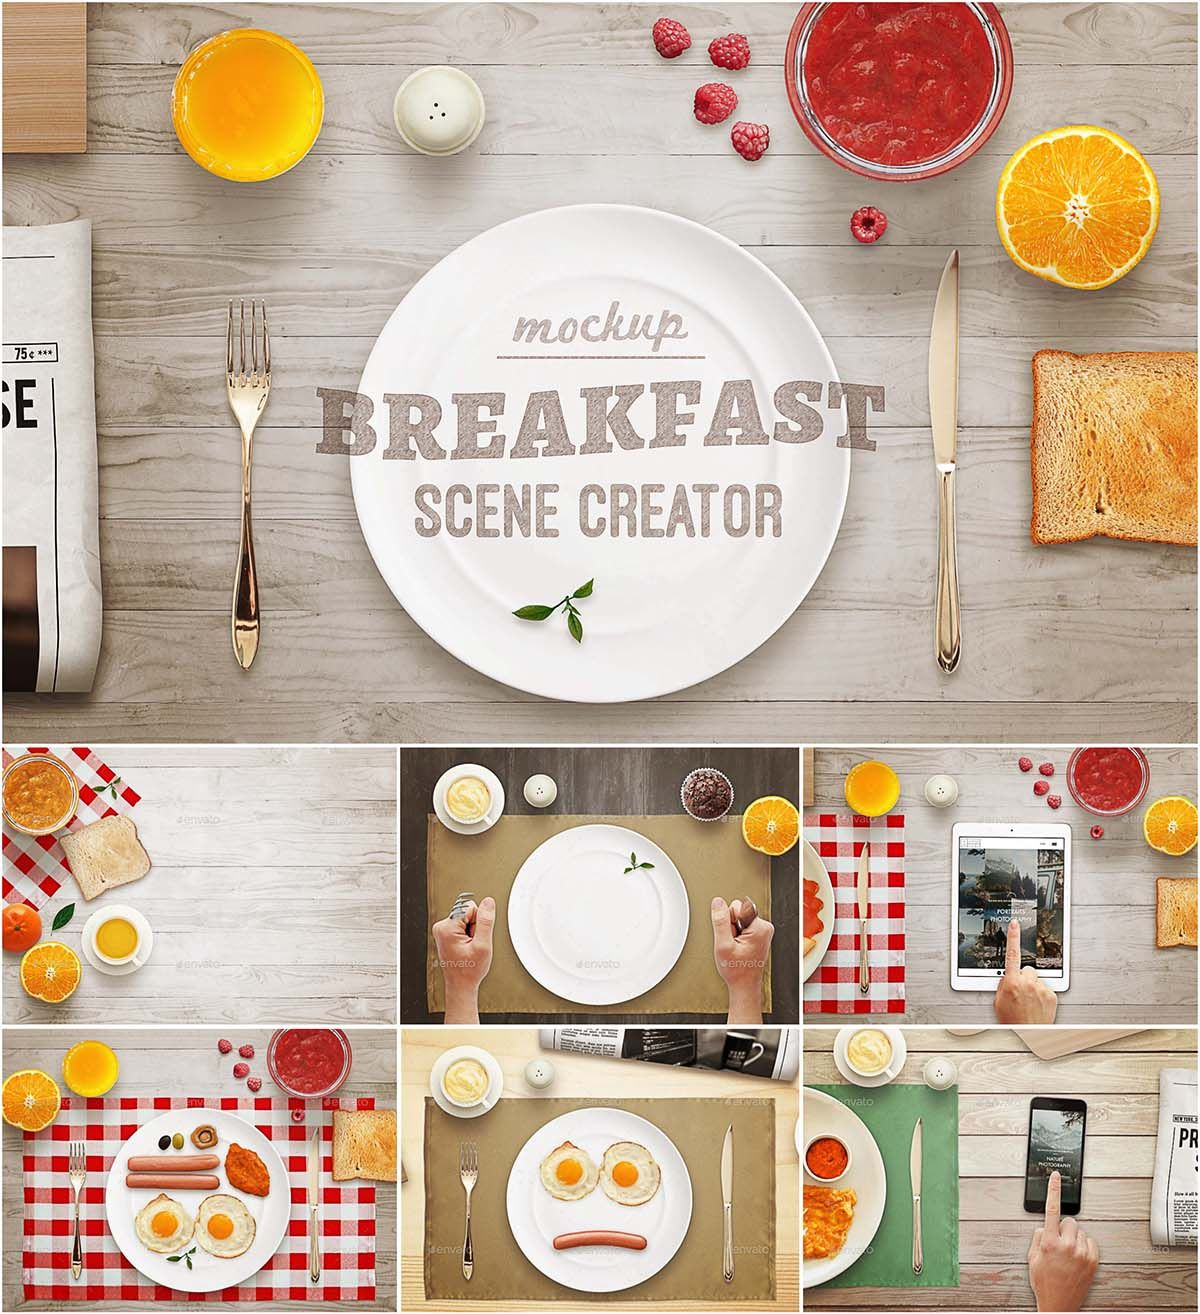 Breakfast mockup scene creator set free vectors cards